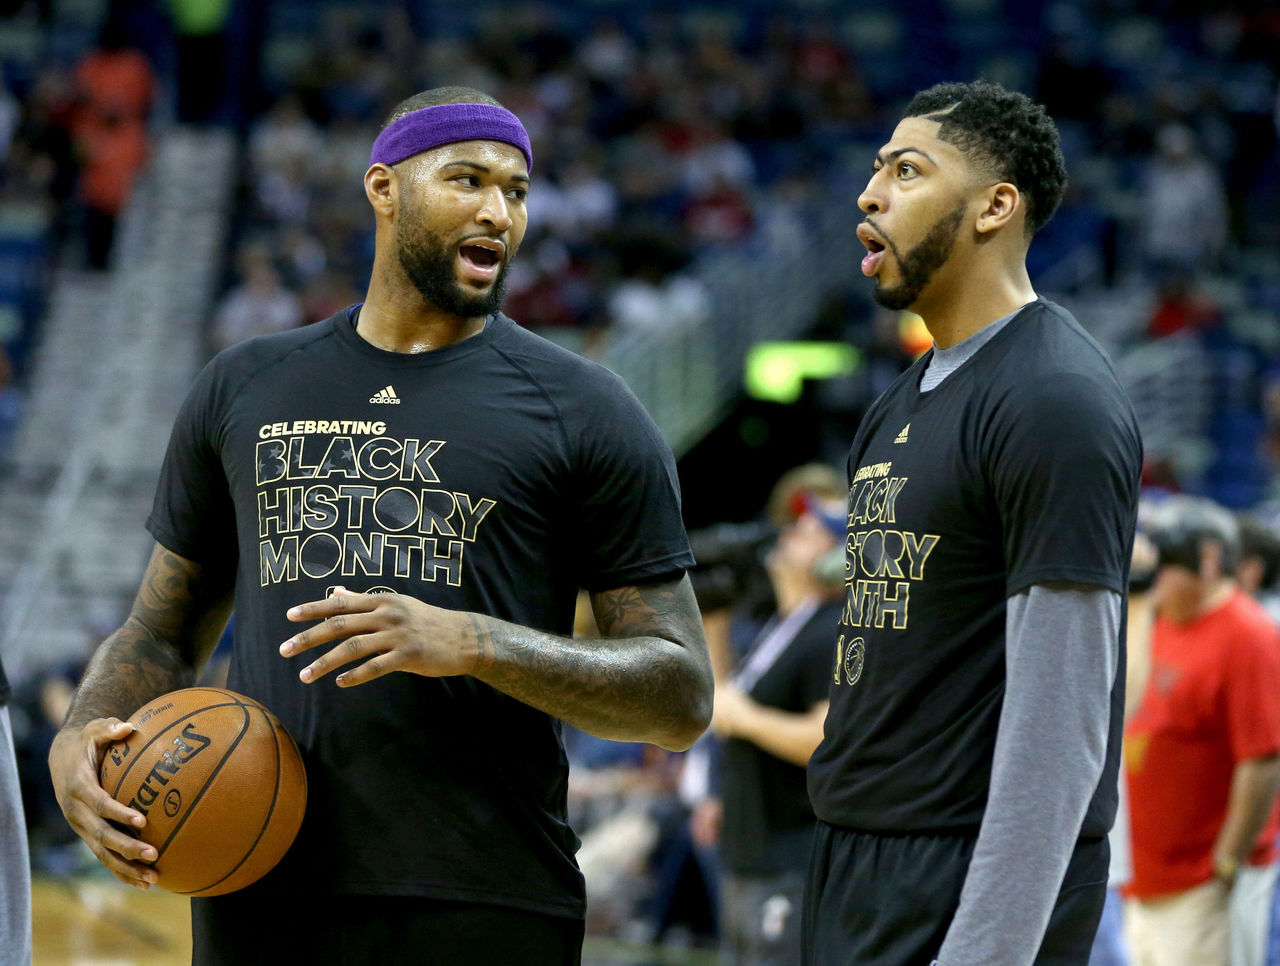 Cropped 2017 02 24t013134z 1335433778 nocid rtrmadp 3 nba houston rockets at new orleans pelicans